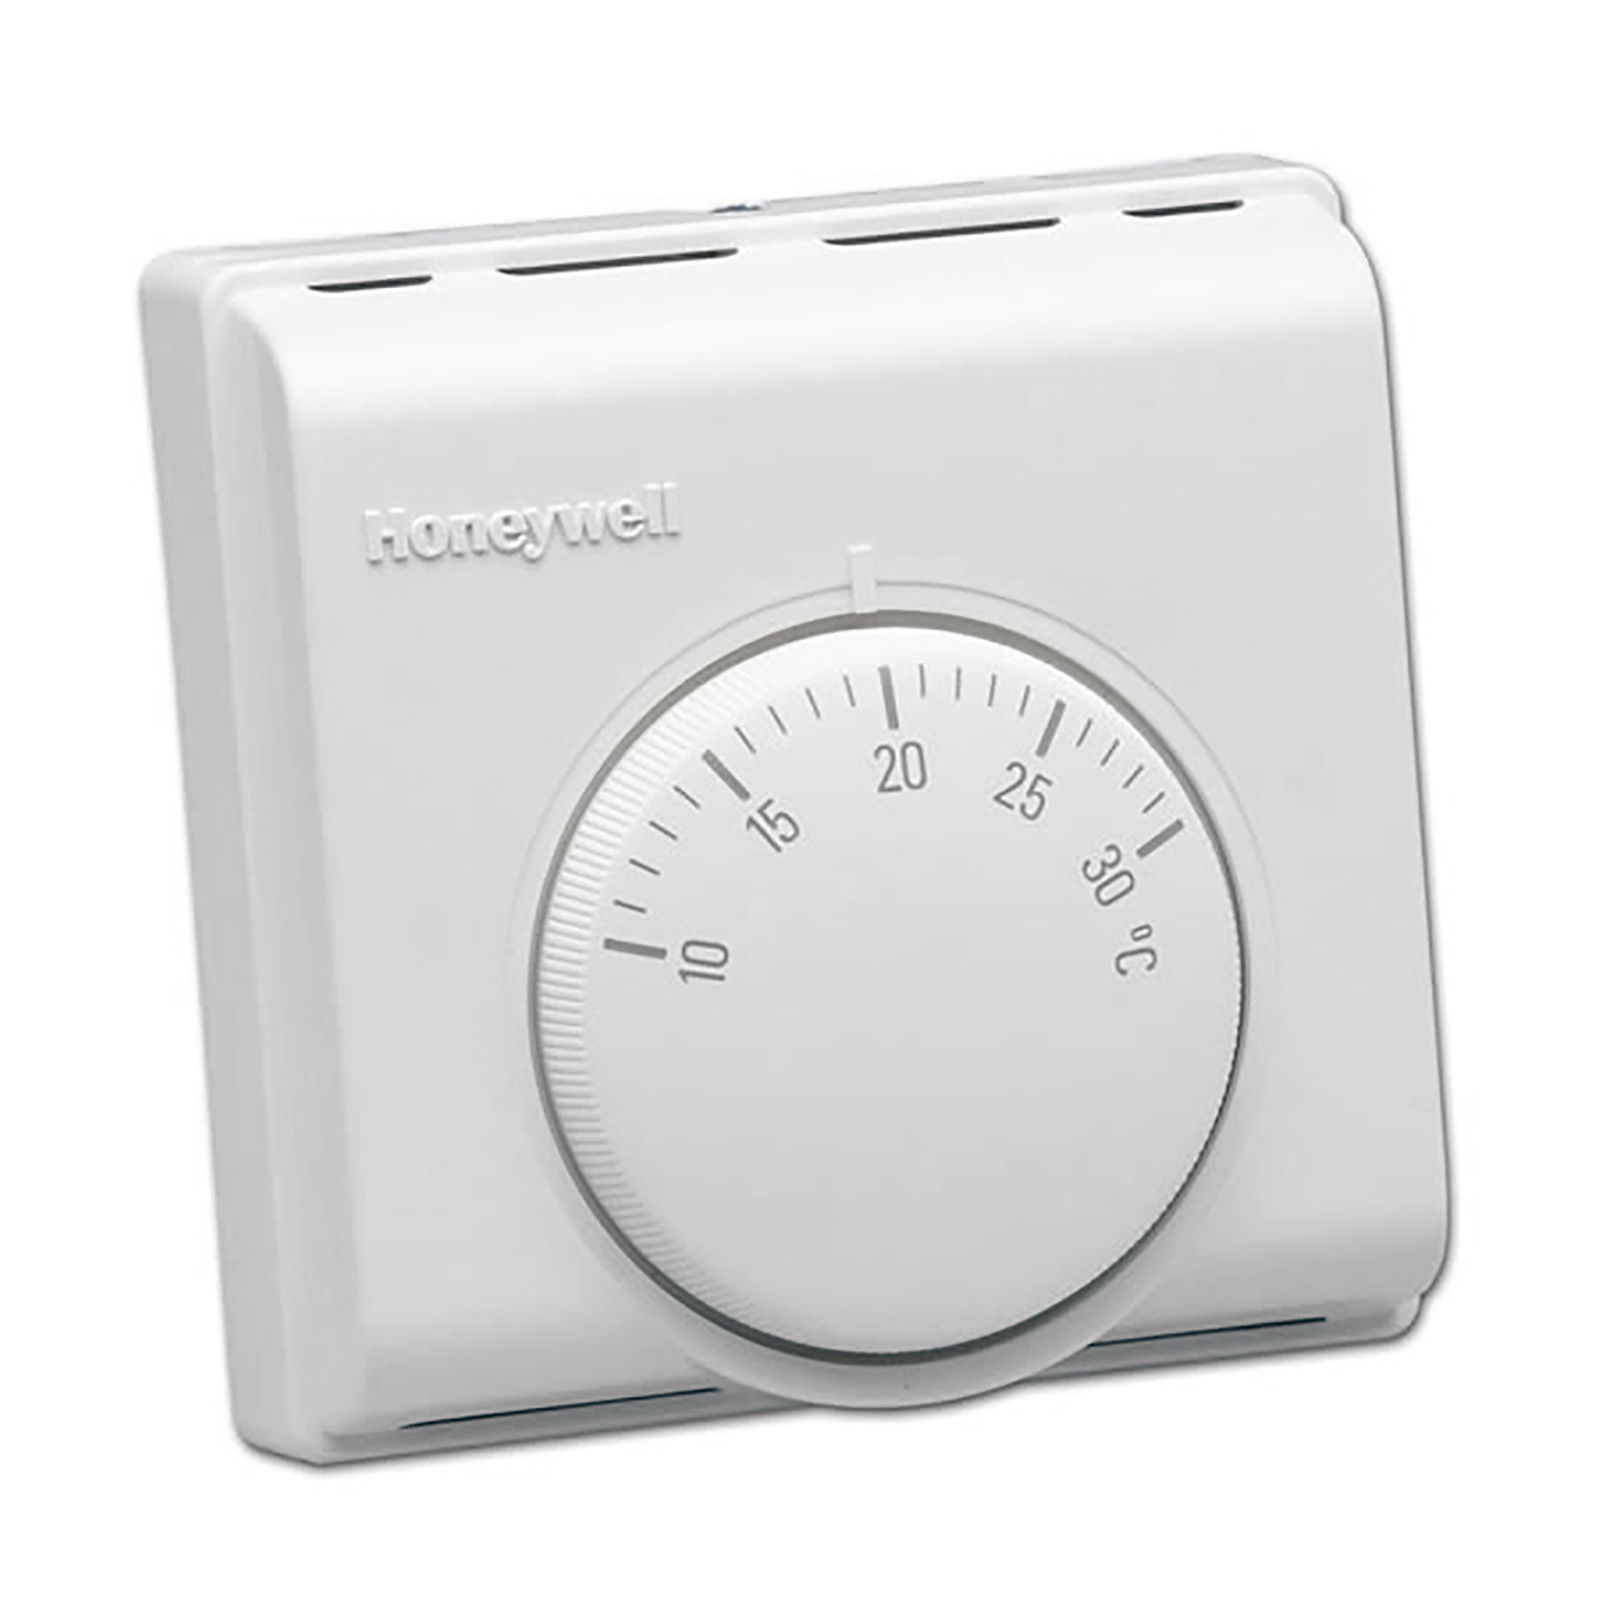 Honeywell T6360 Central Heating Room Thermostat - Heat & Things